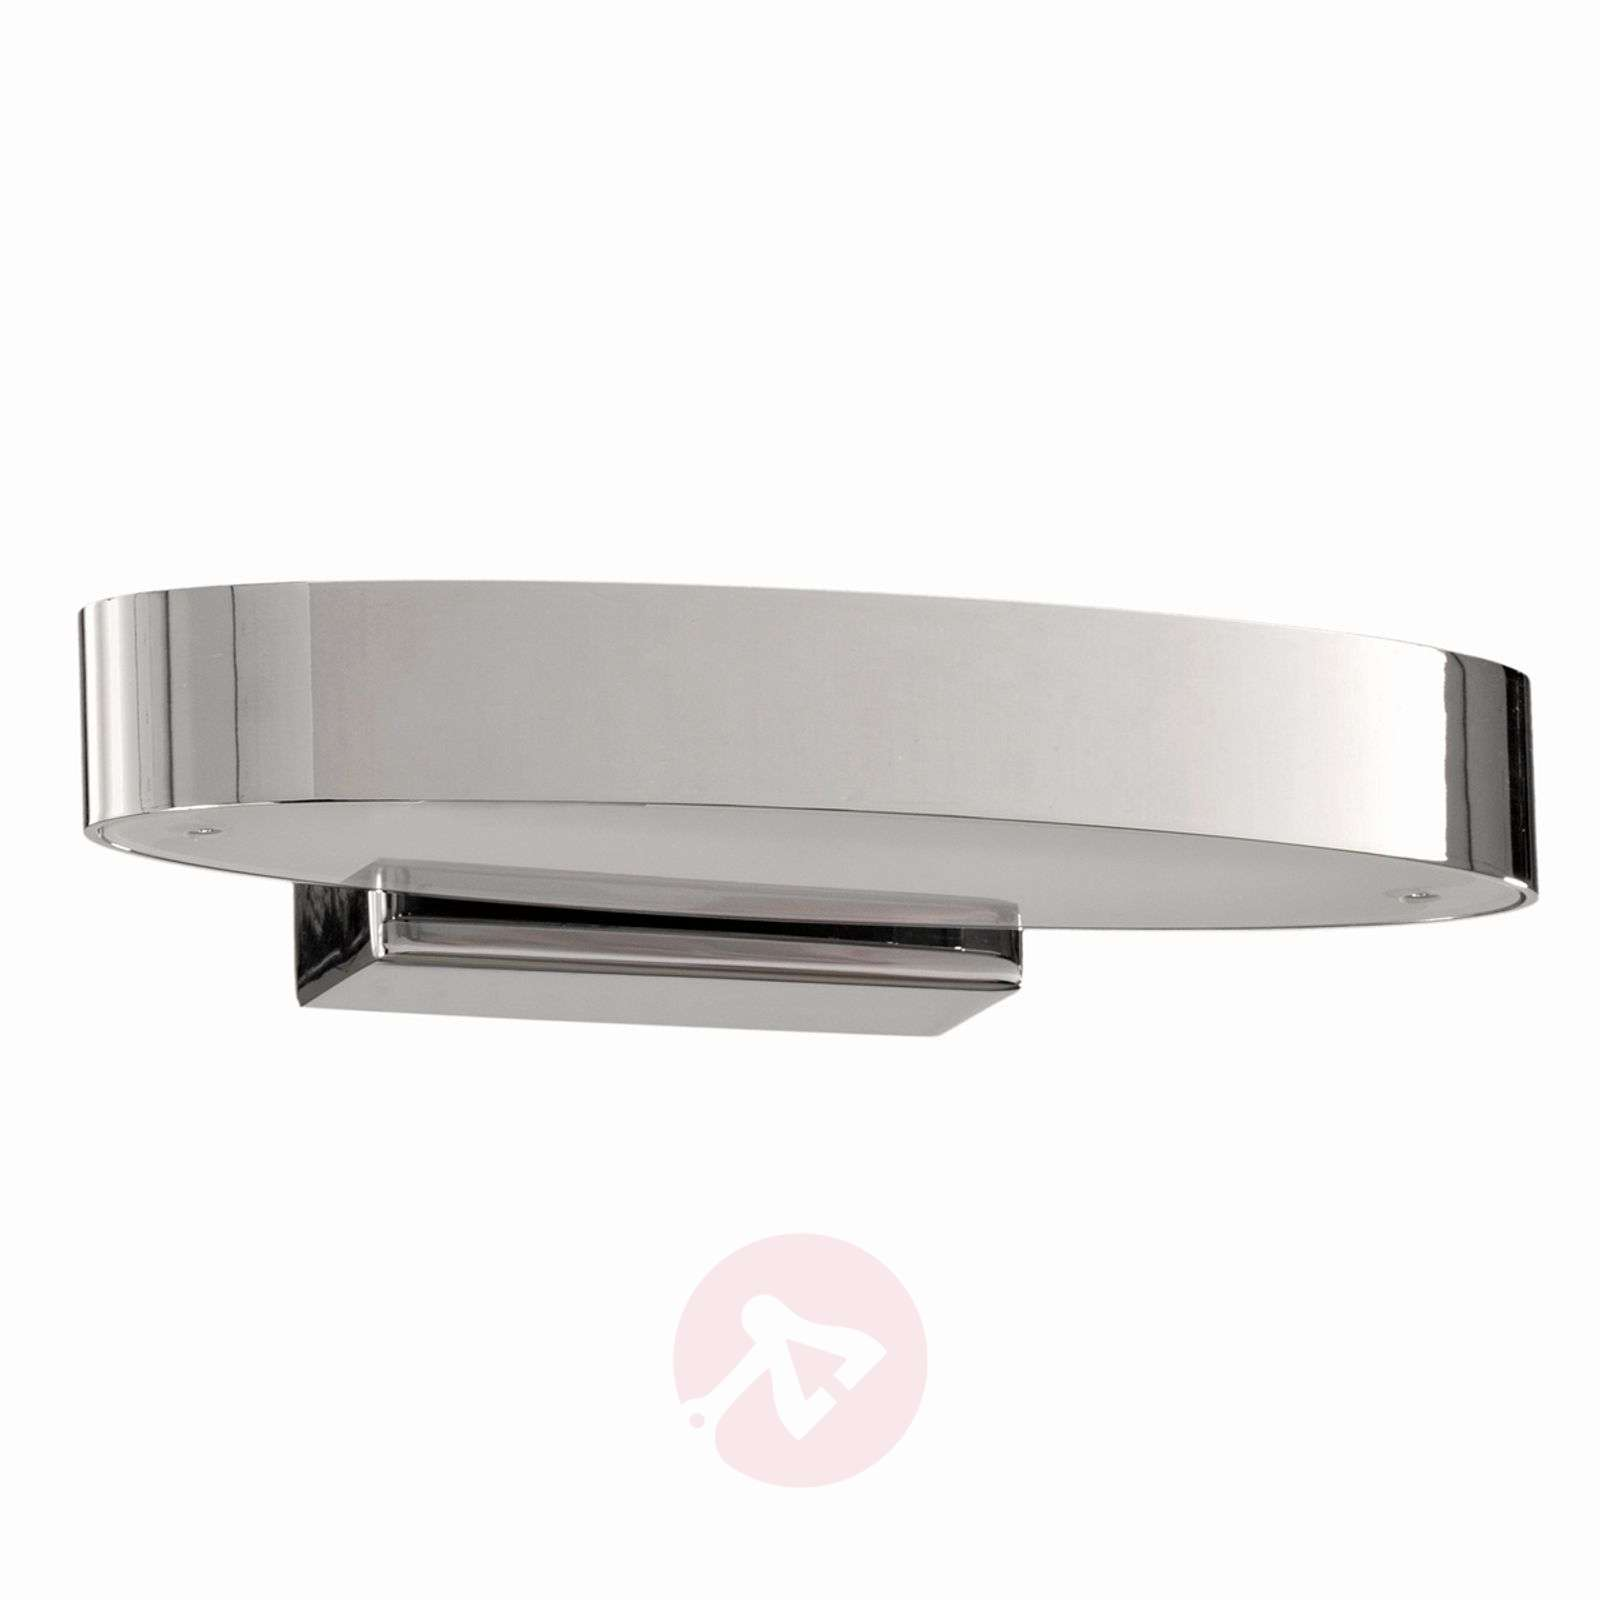 Elyptic an appealing LED wall light-1050055-01